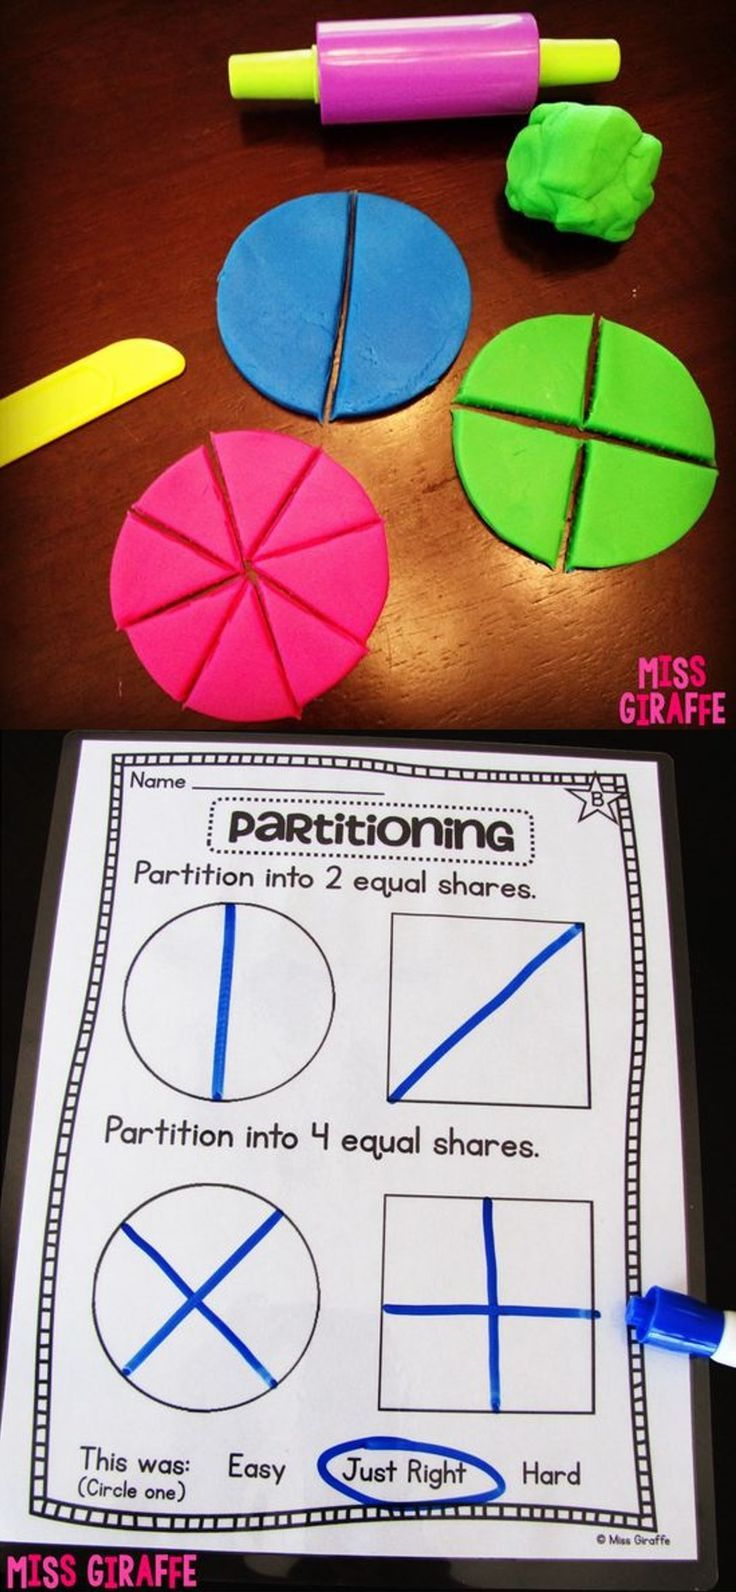 First grade fractions activities and ideas to practice partitioning shapes into equal parts